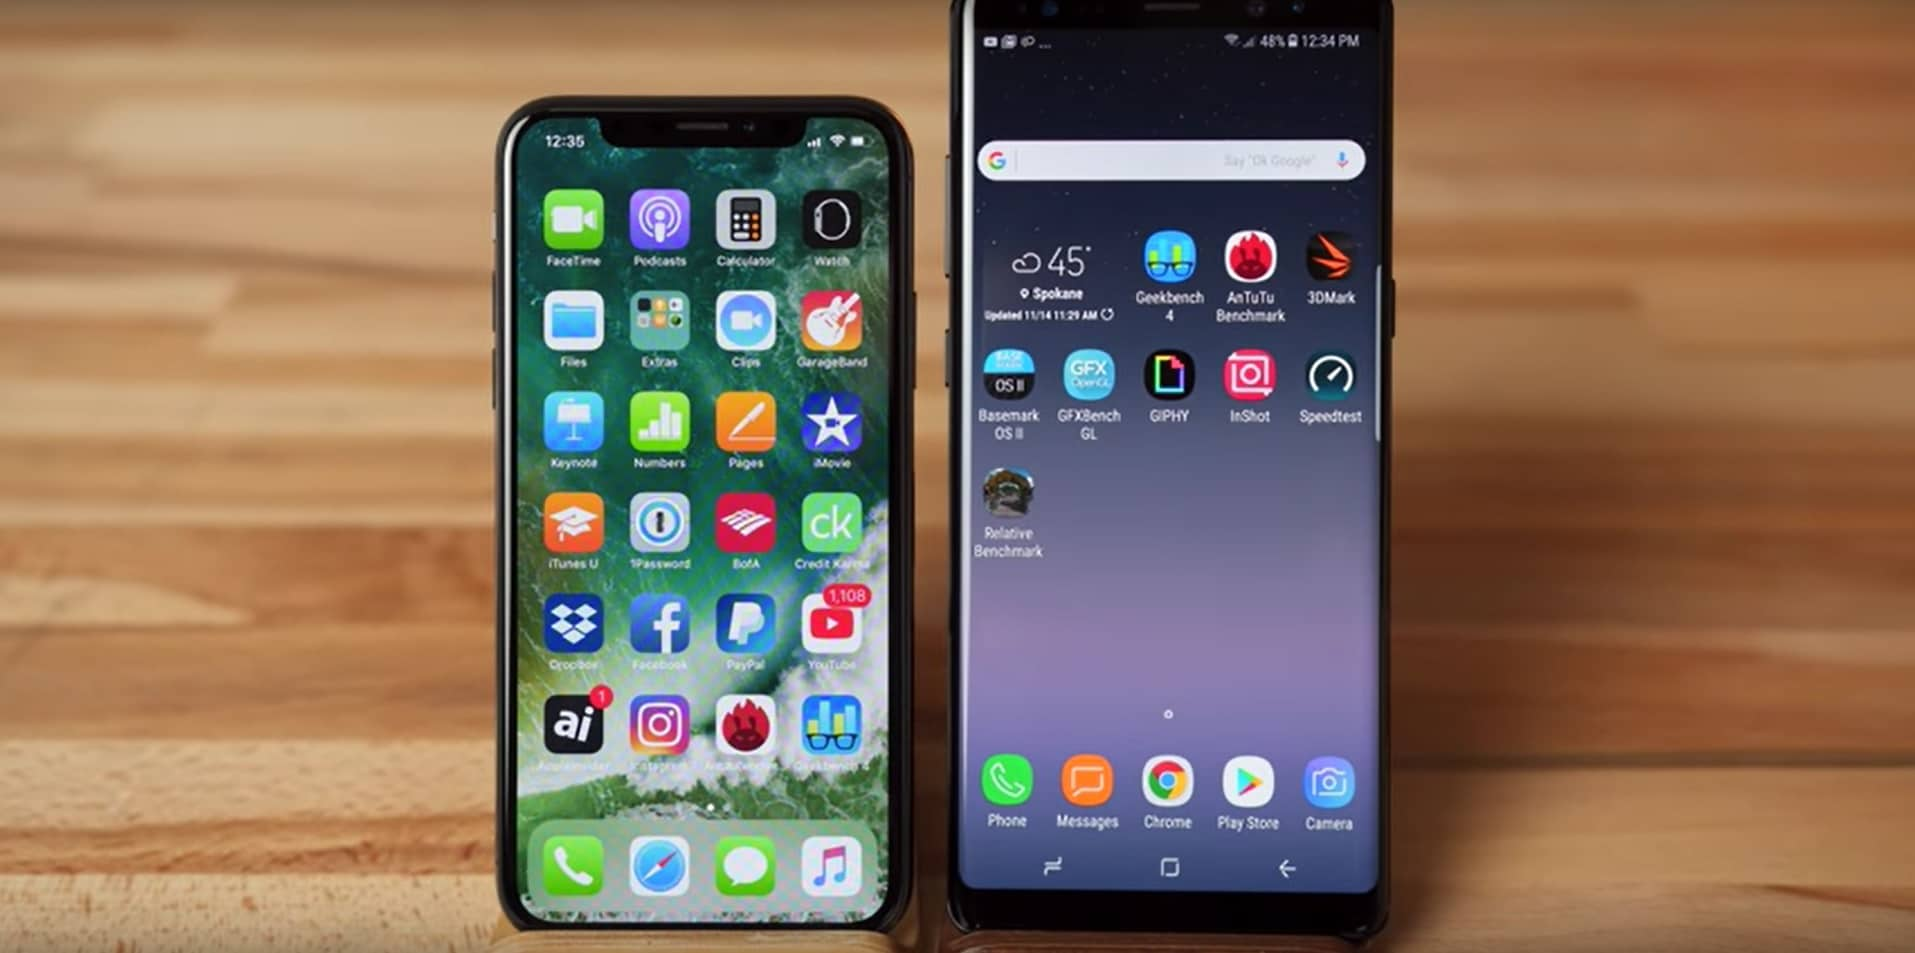 iphone x vs galaxy note 8 benchmarks